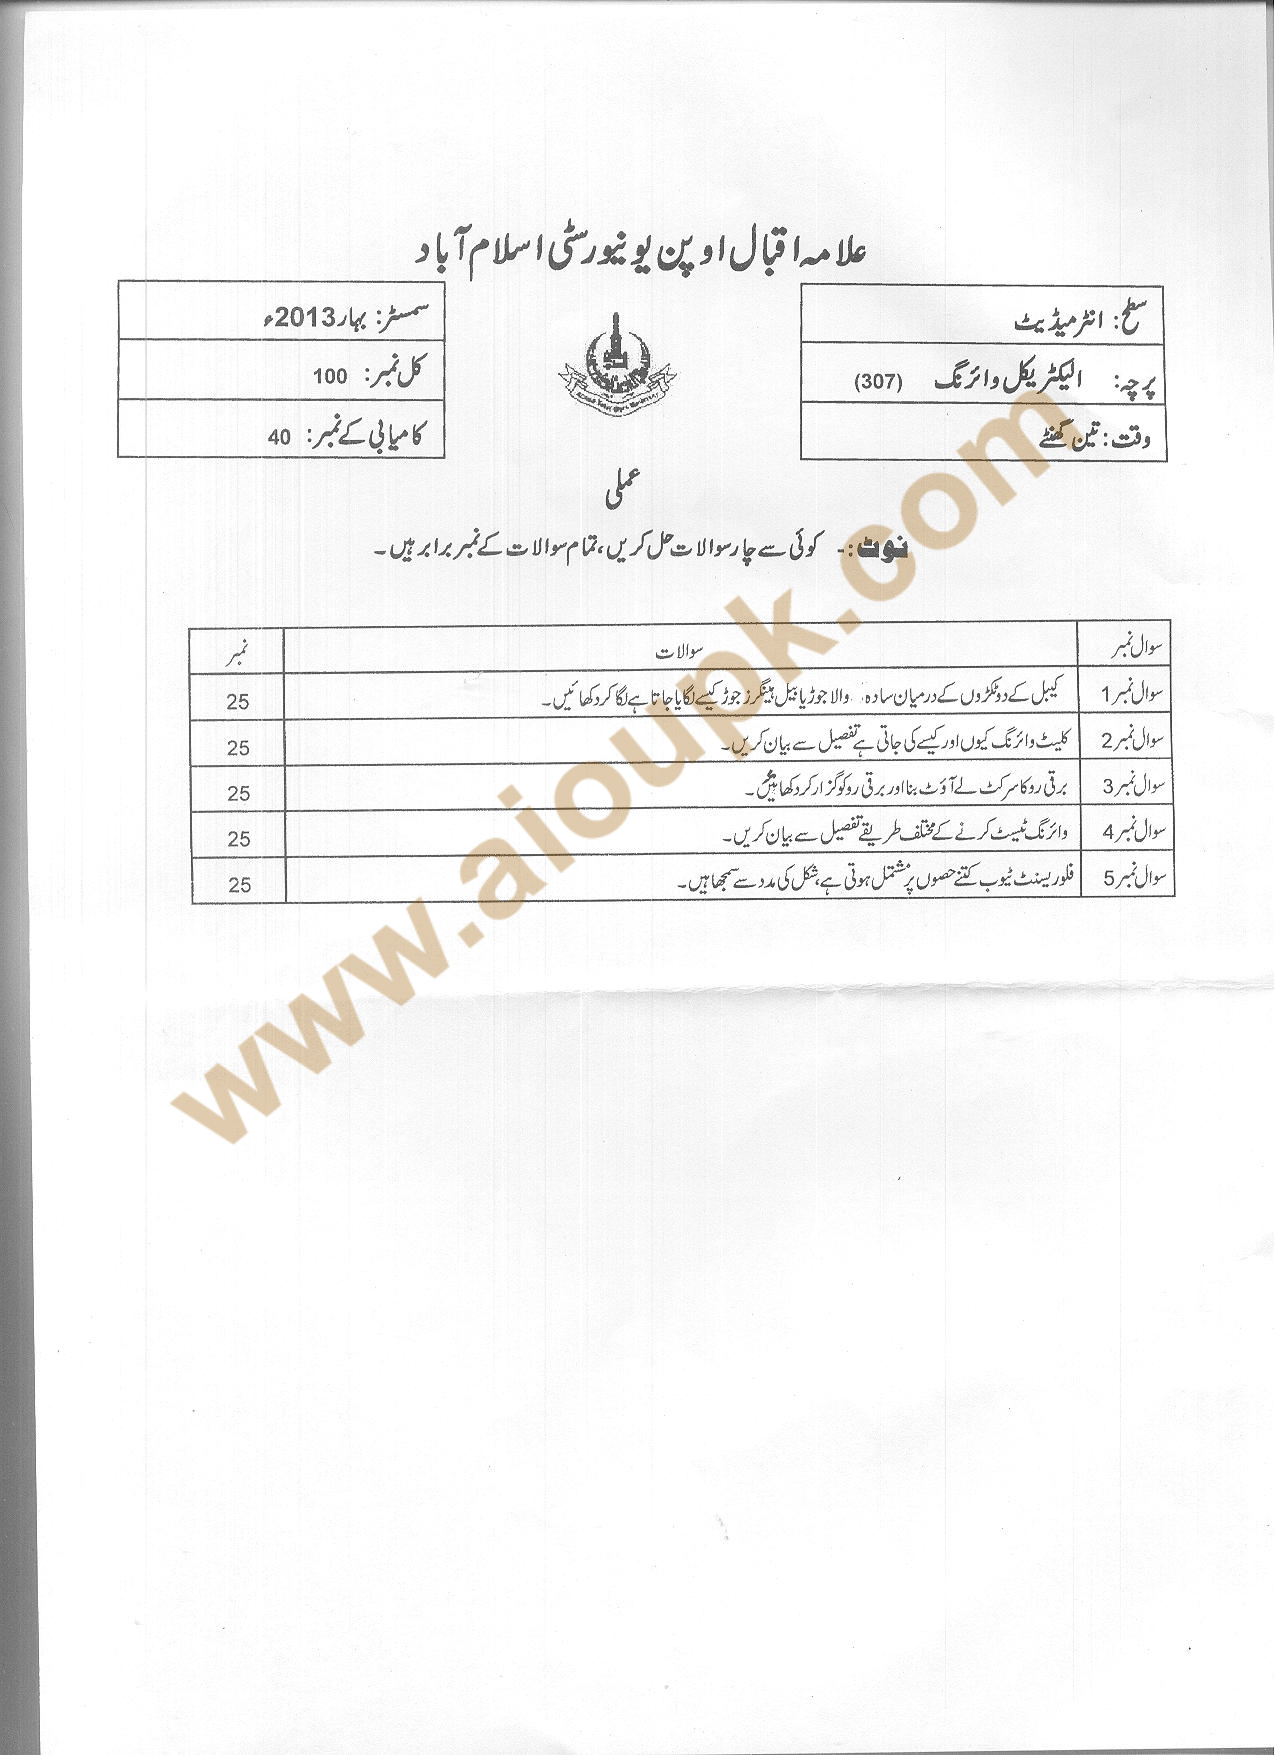 Electrical Wiring Code 307 Aiou Old Papers Intermediate